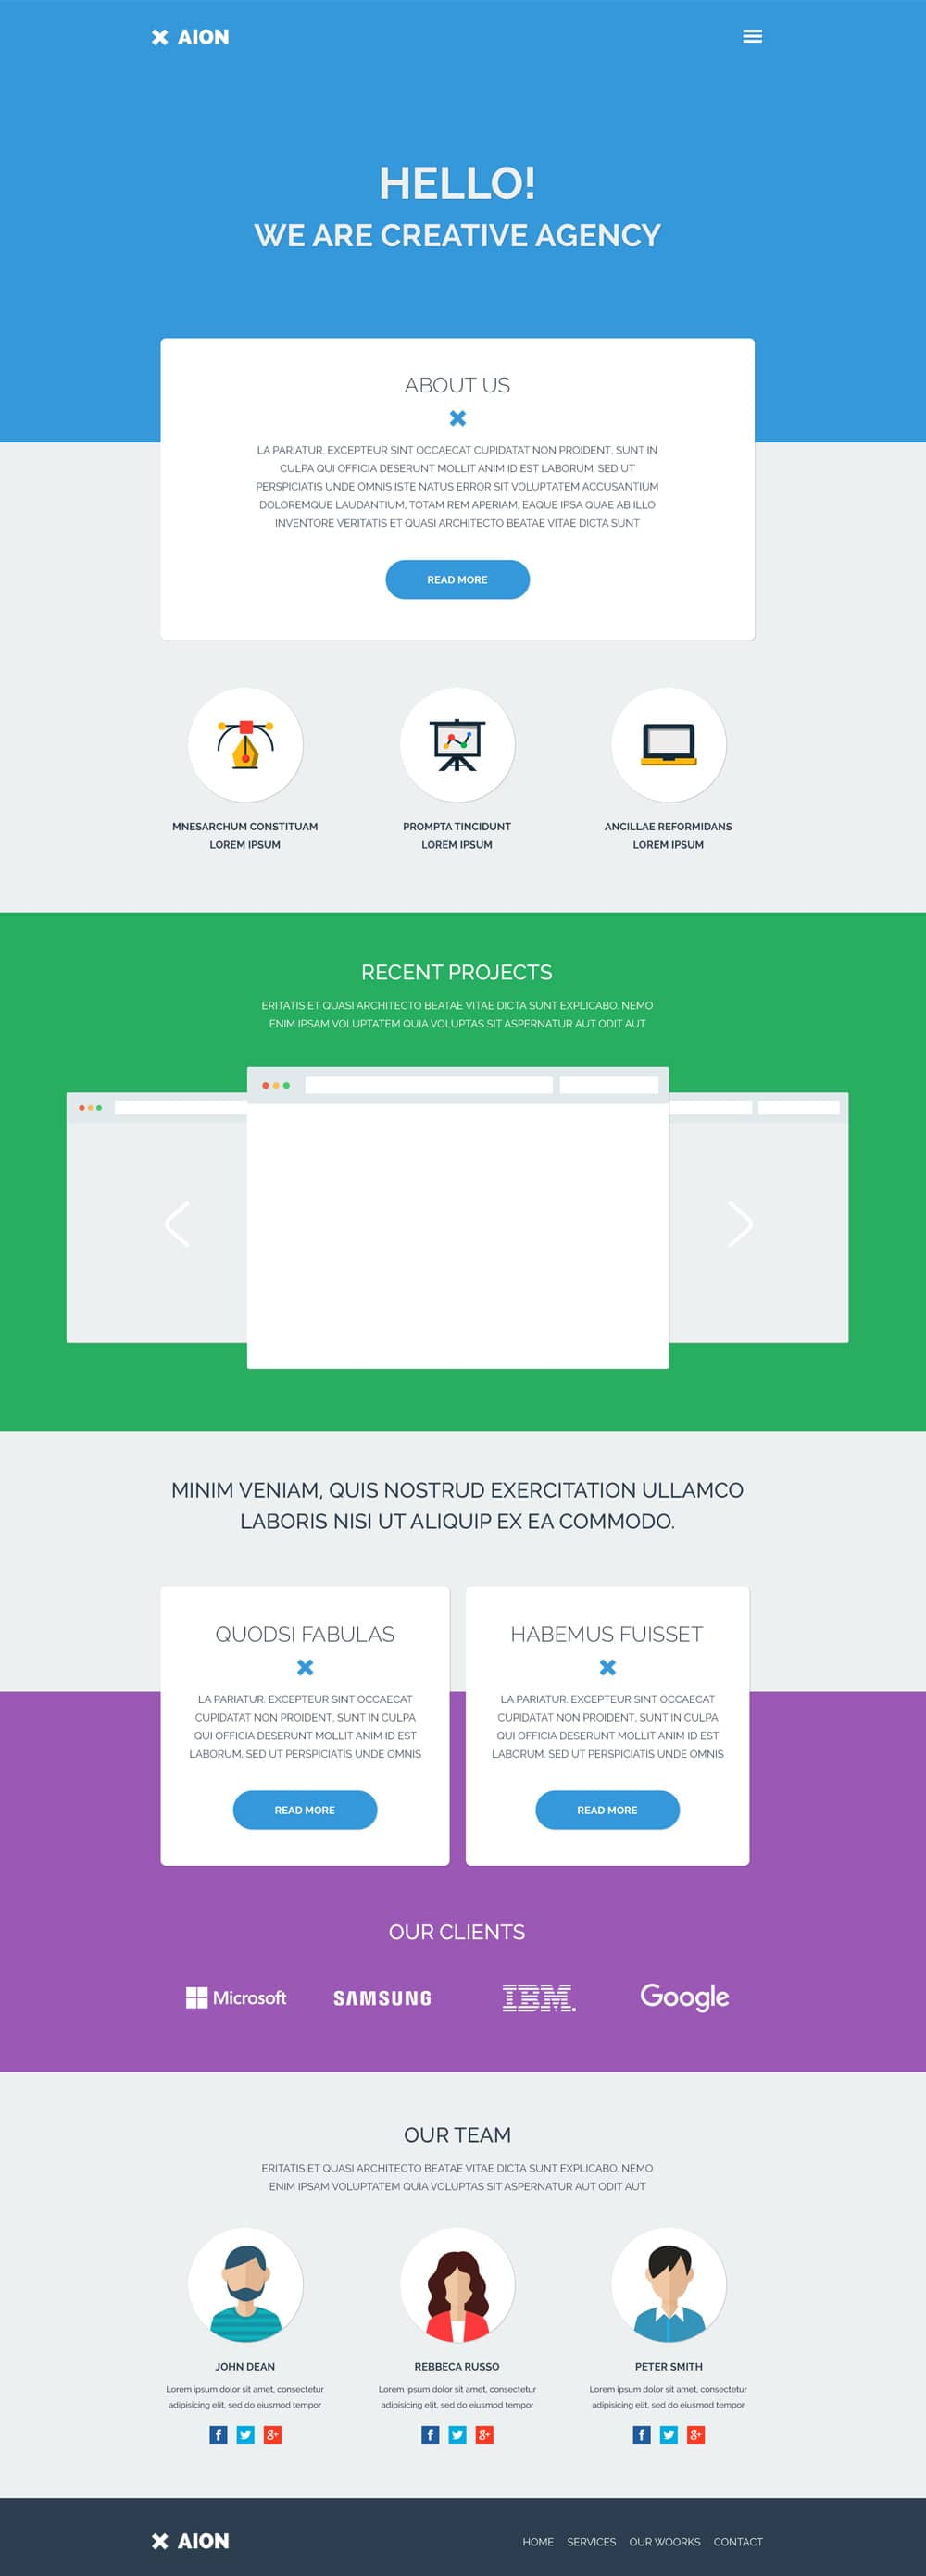 Free corporate and business web templates psd aion free web template psd flashek